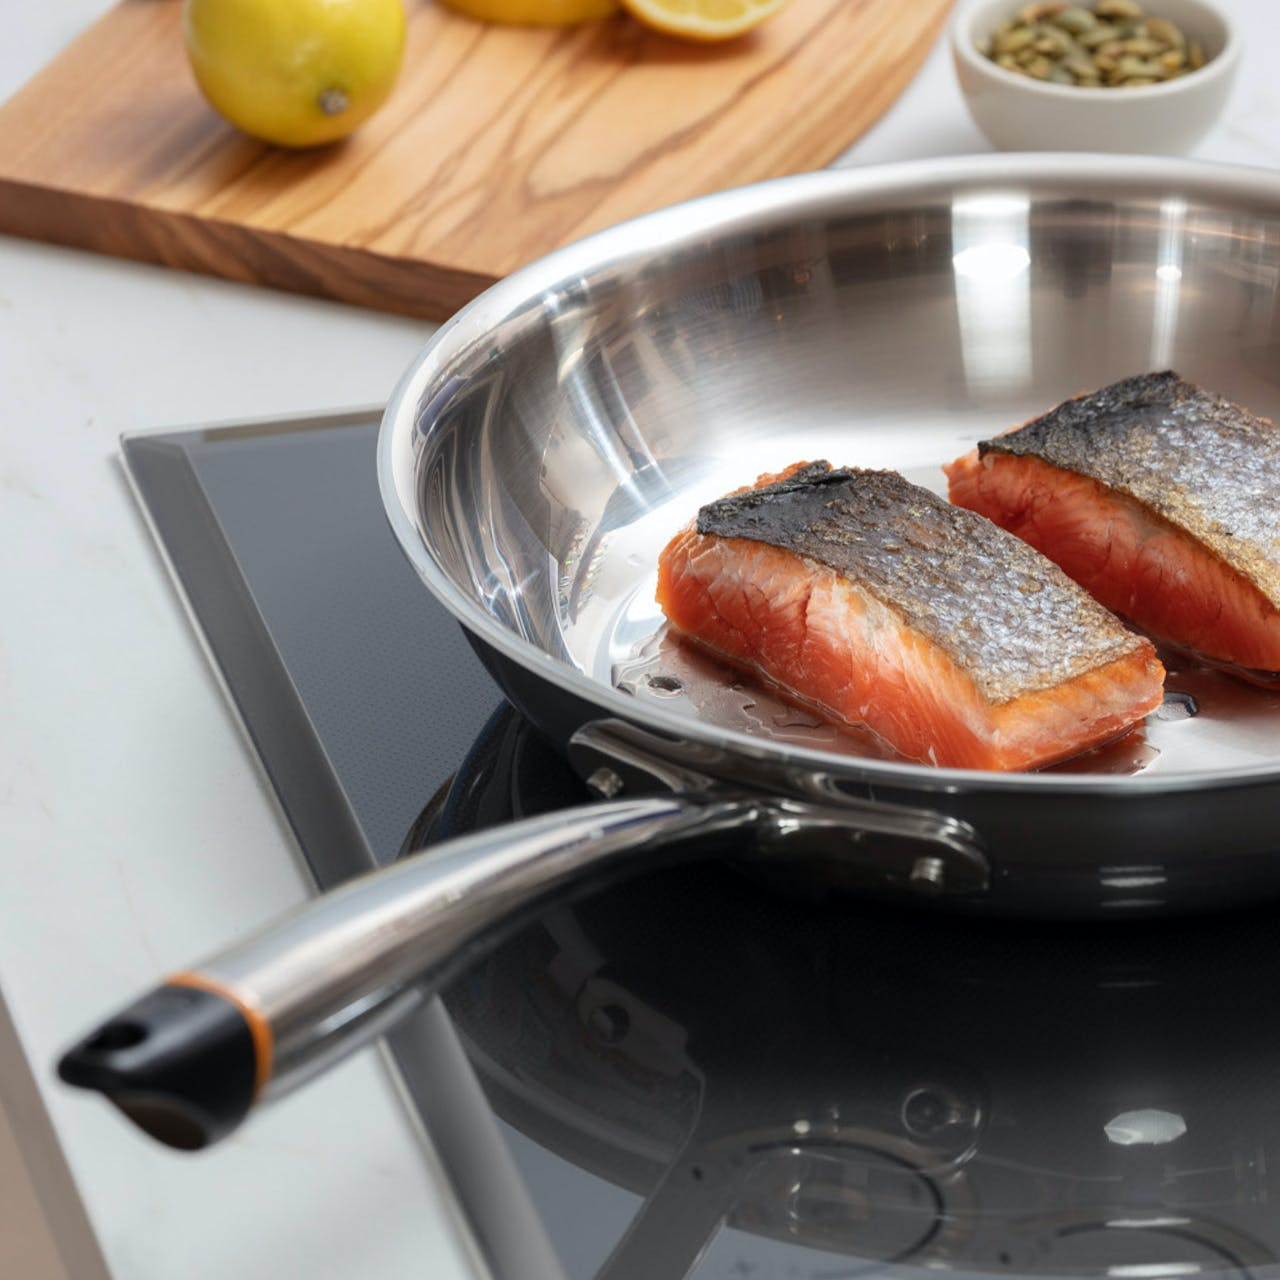 Hestan Cue smart pan with salmon